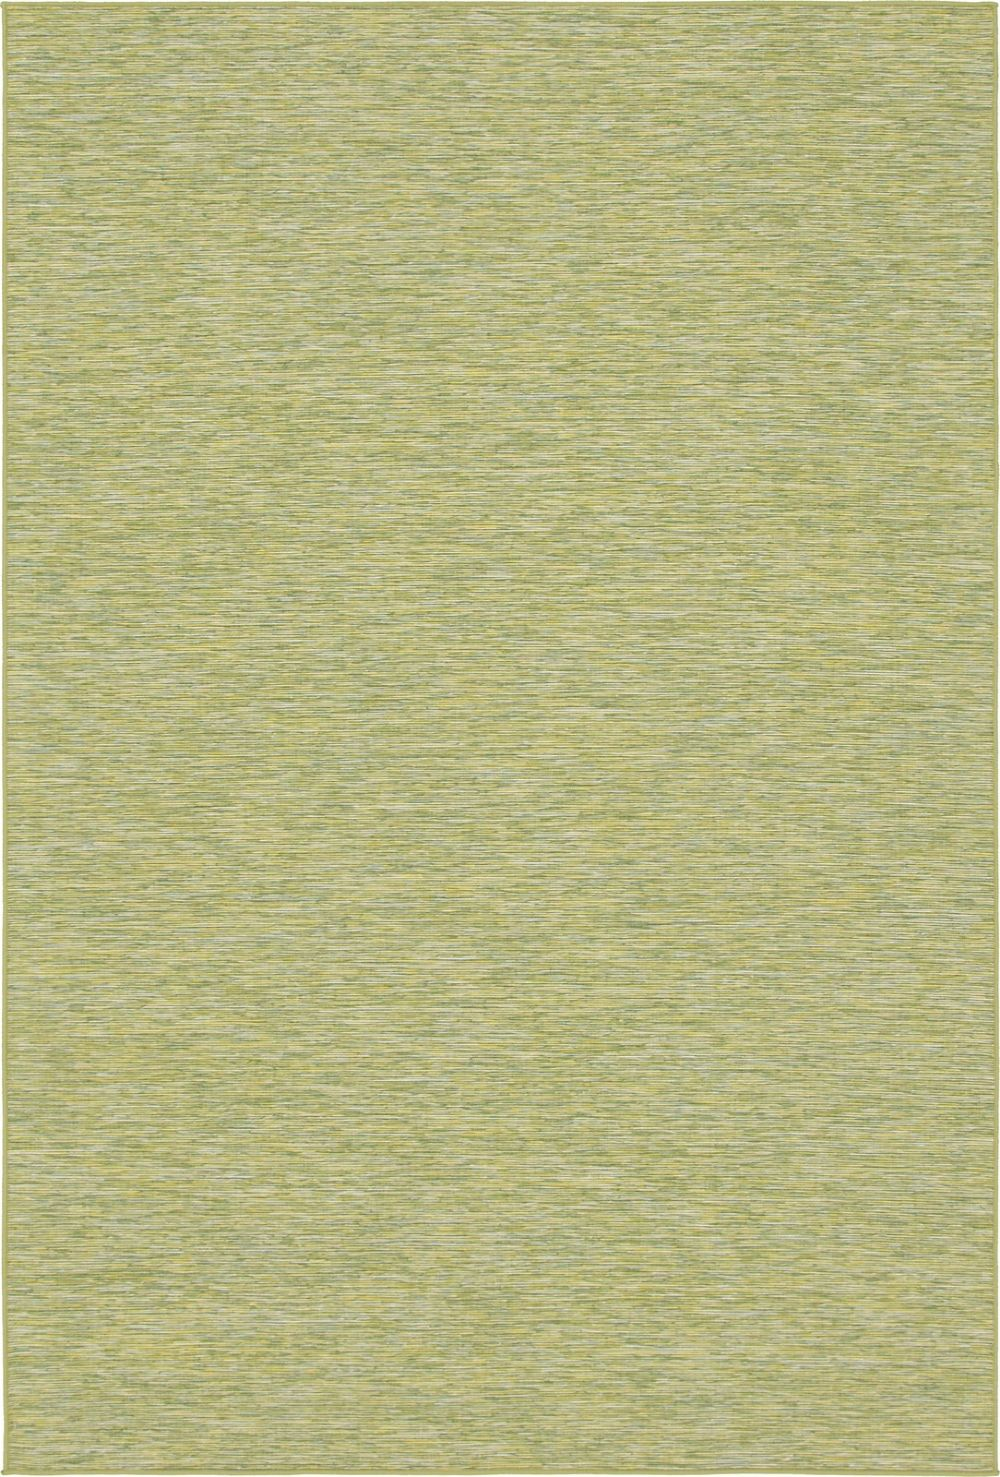 garden variety solid/striped area rug collection